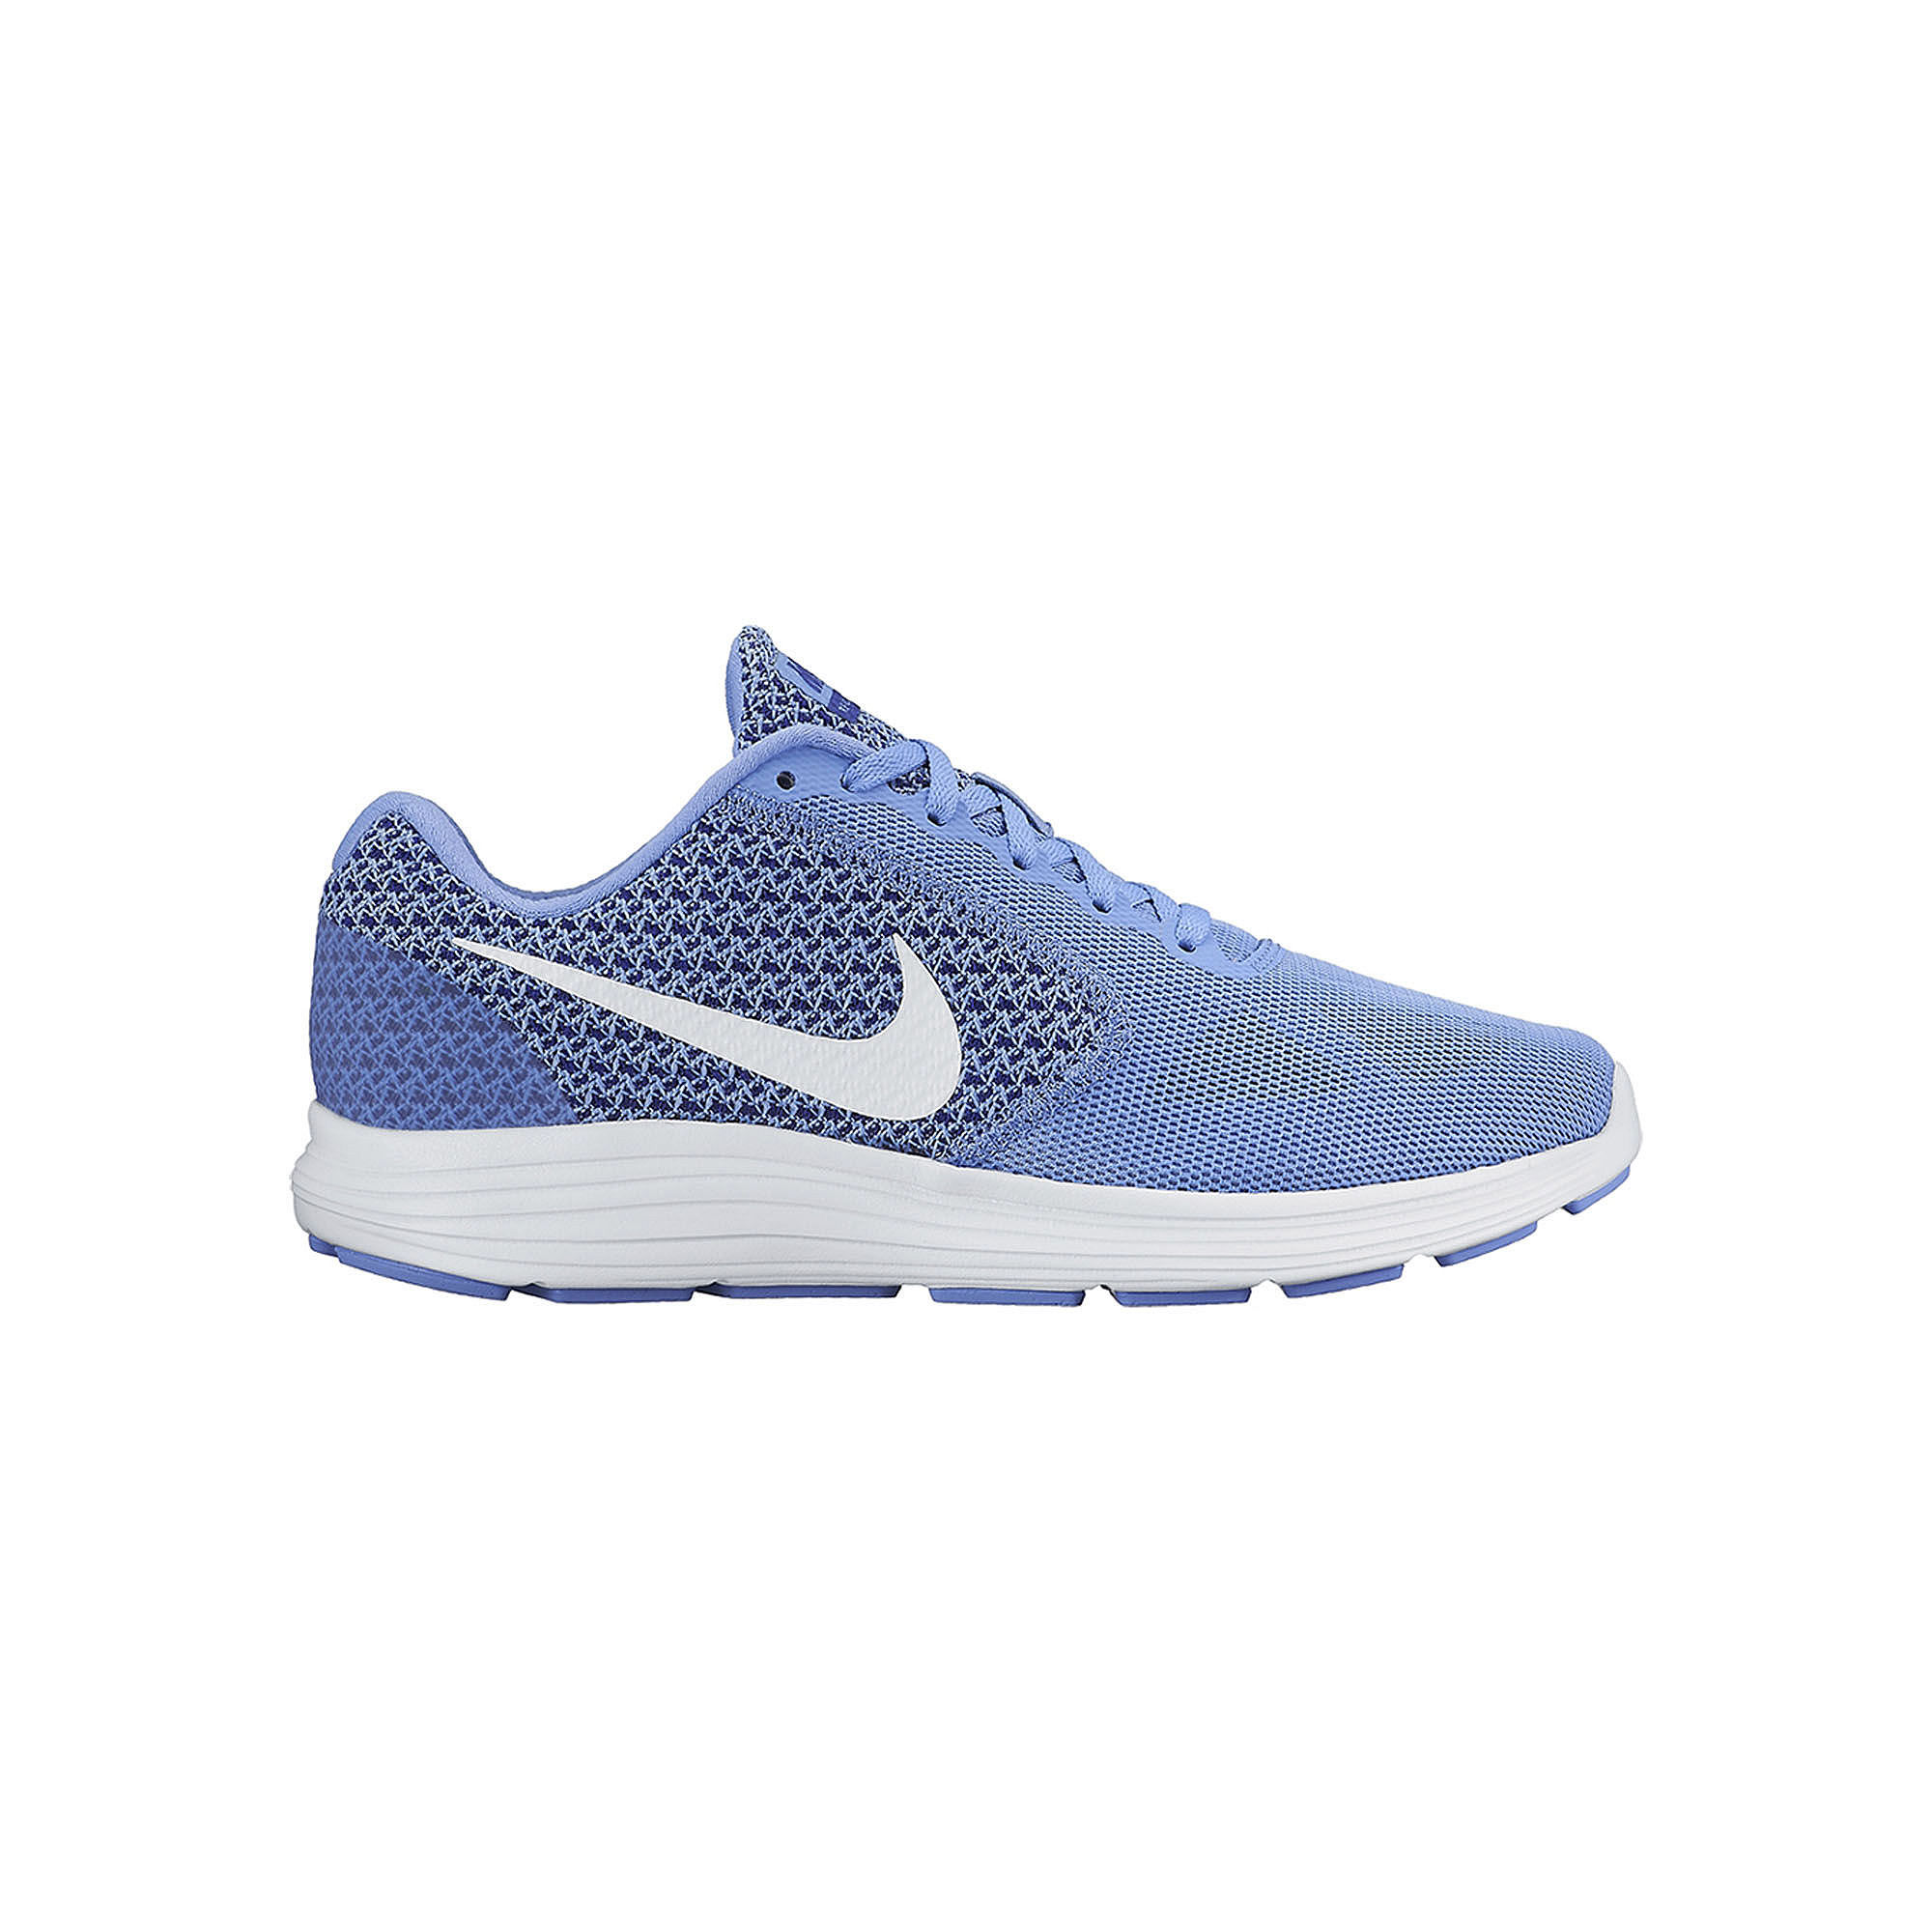 new arrival 6076c 5c2bd ... Blue) - UPC 666003232154 product image for Nike Revolution 3 Womens  Running Shoes   upcitemdb.com